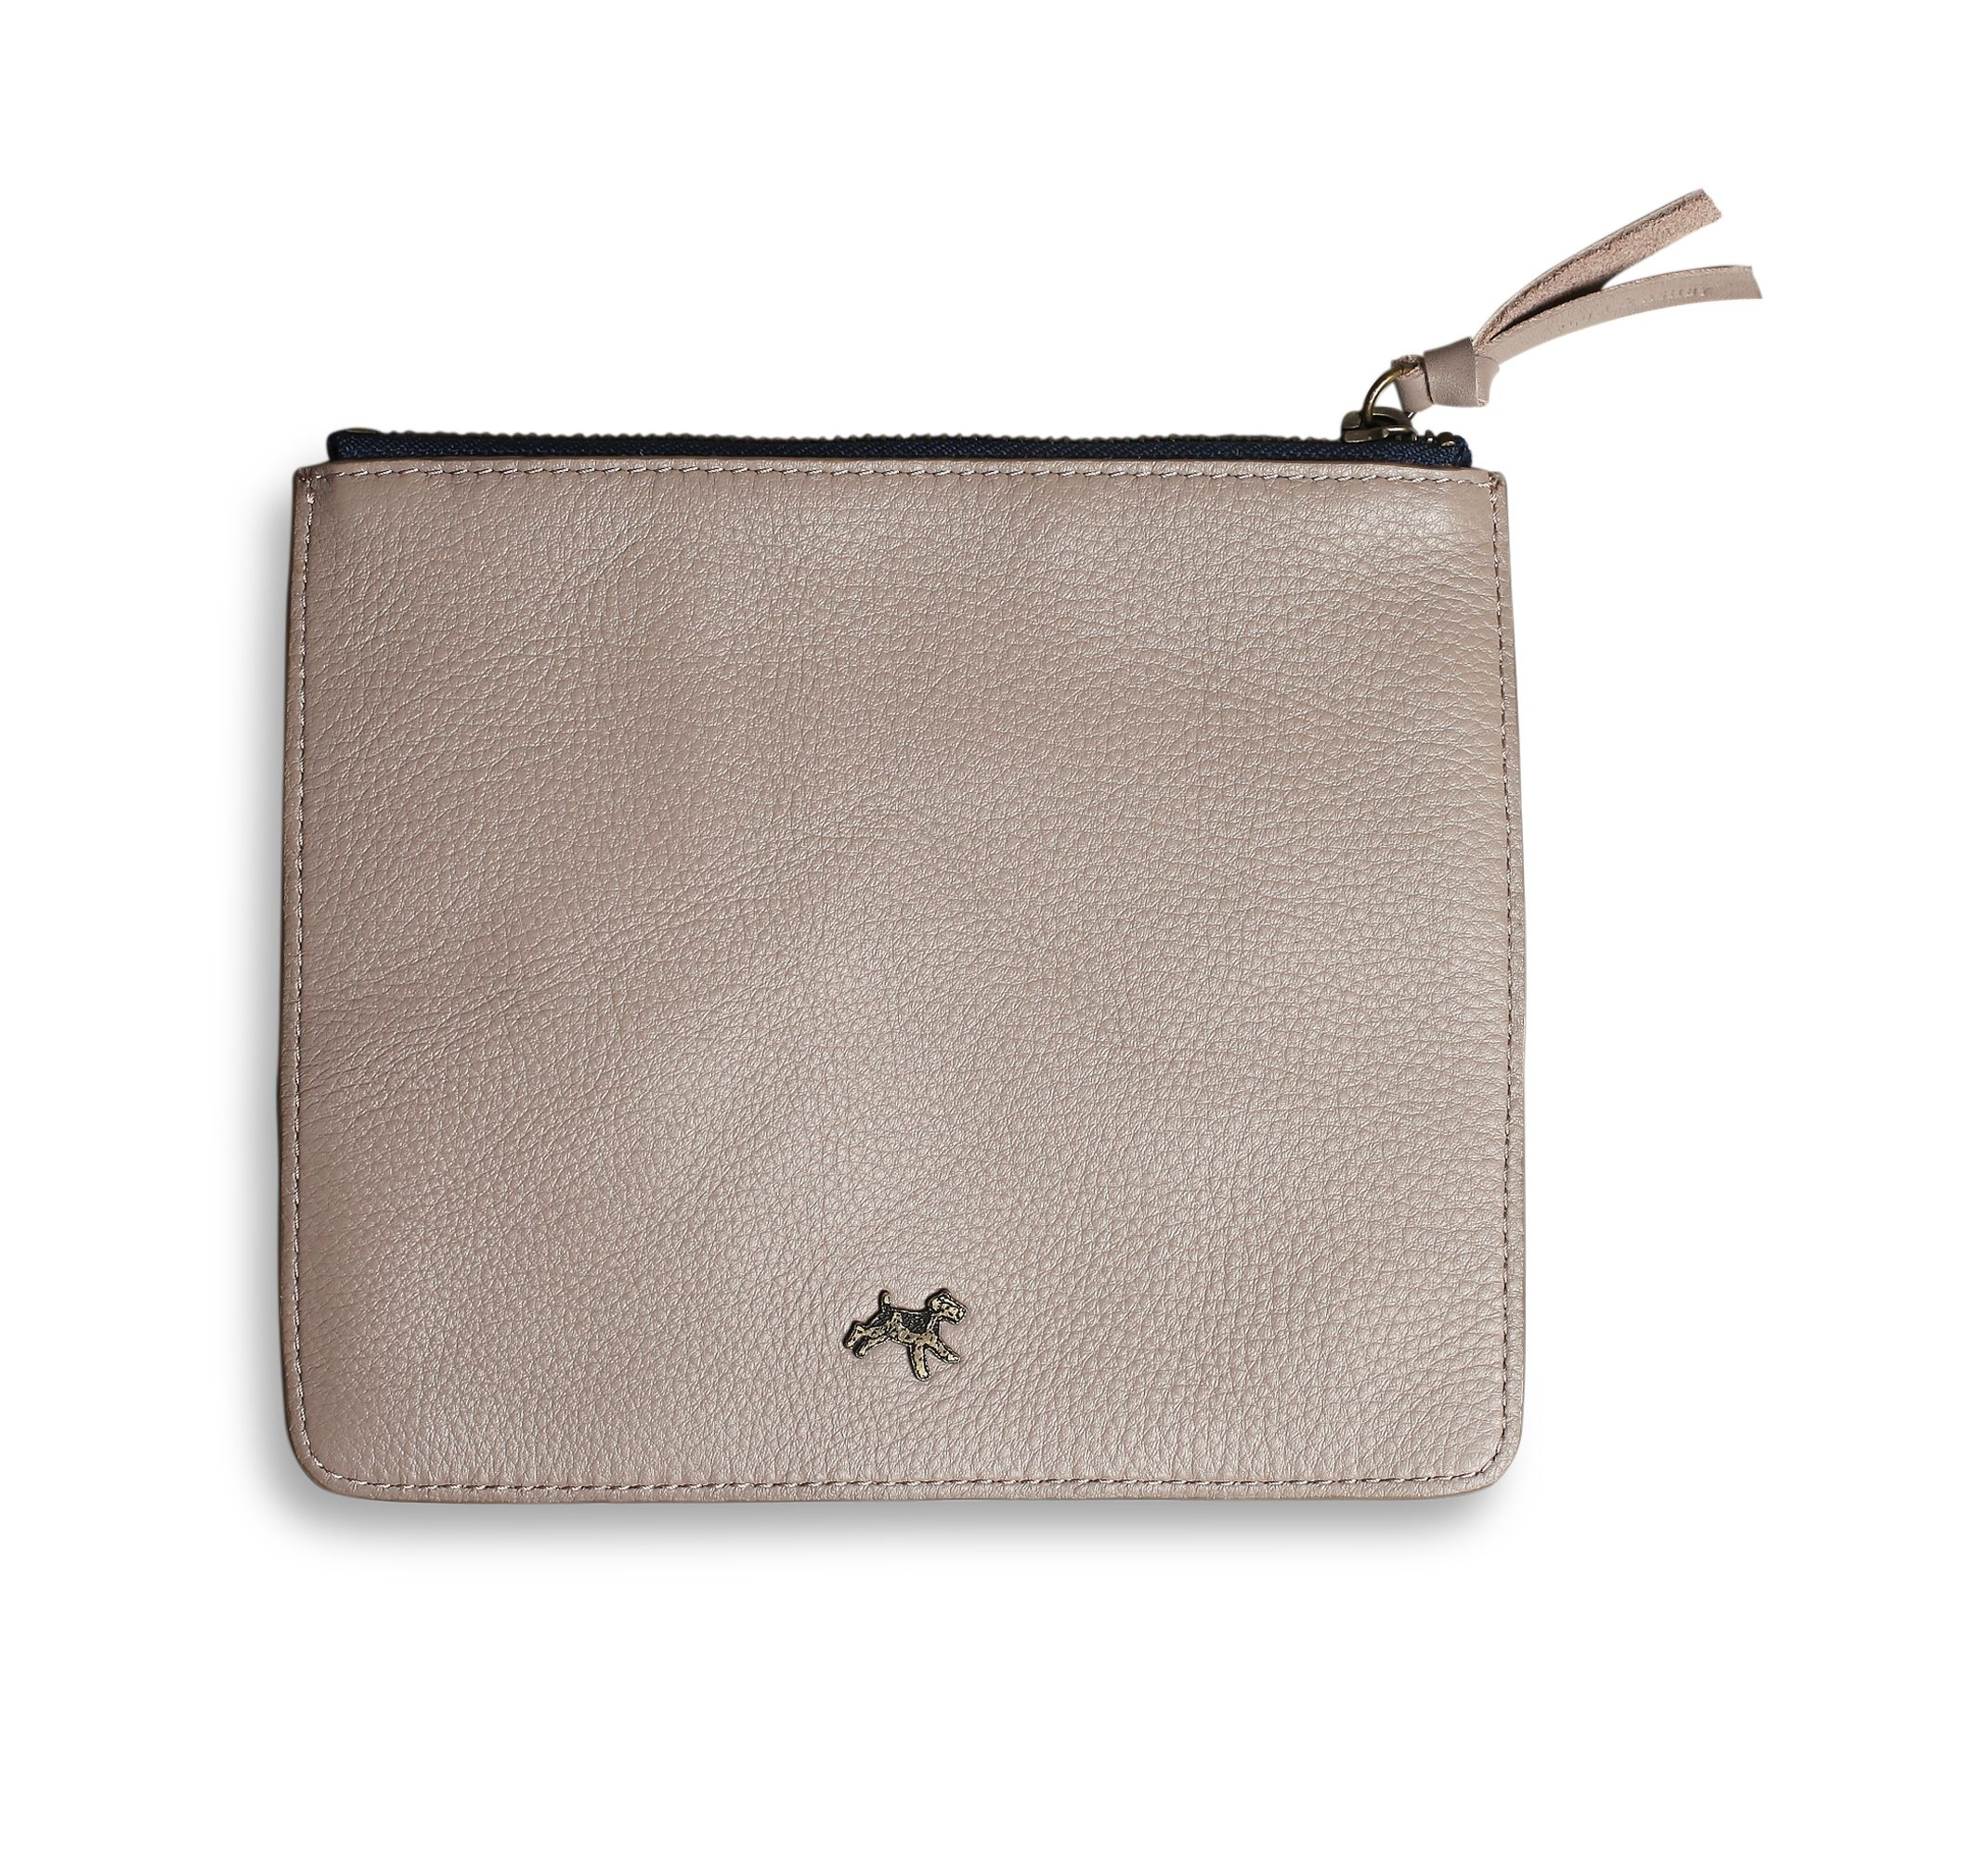 Leather zip pouch in grey